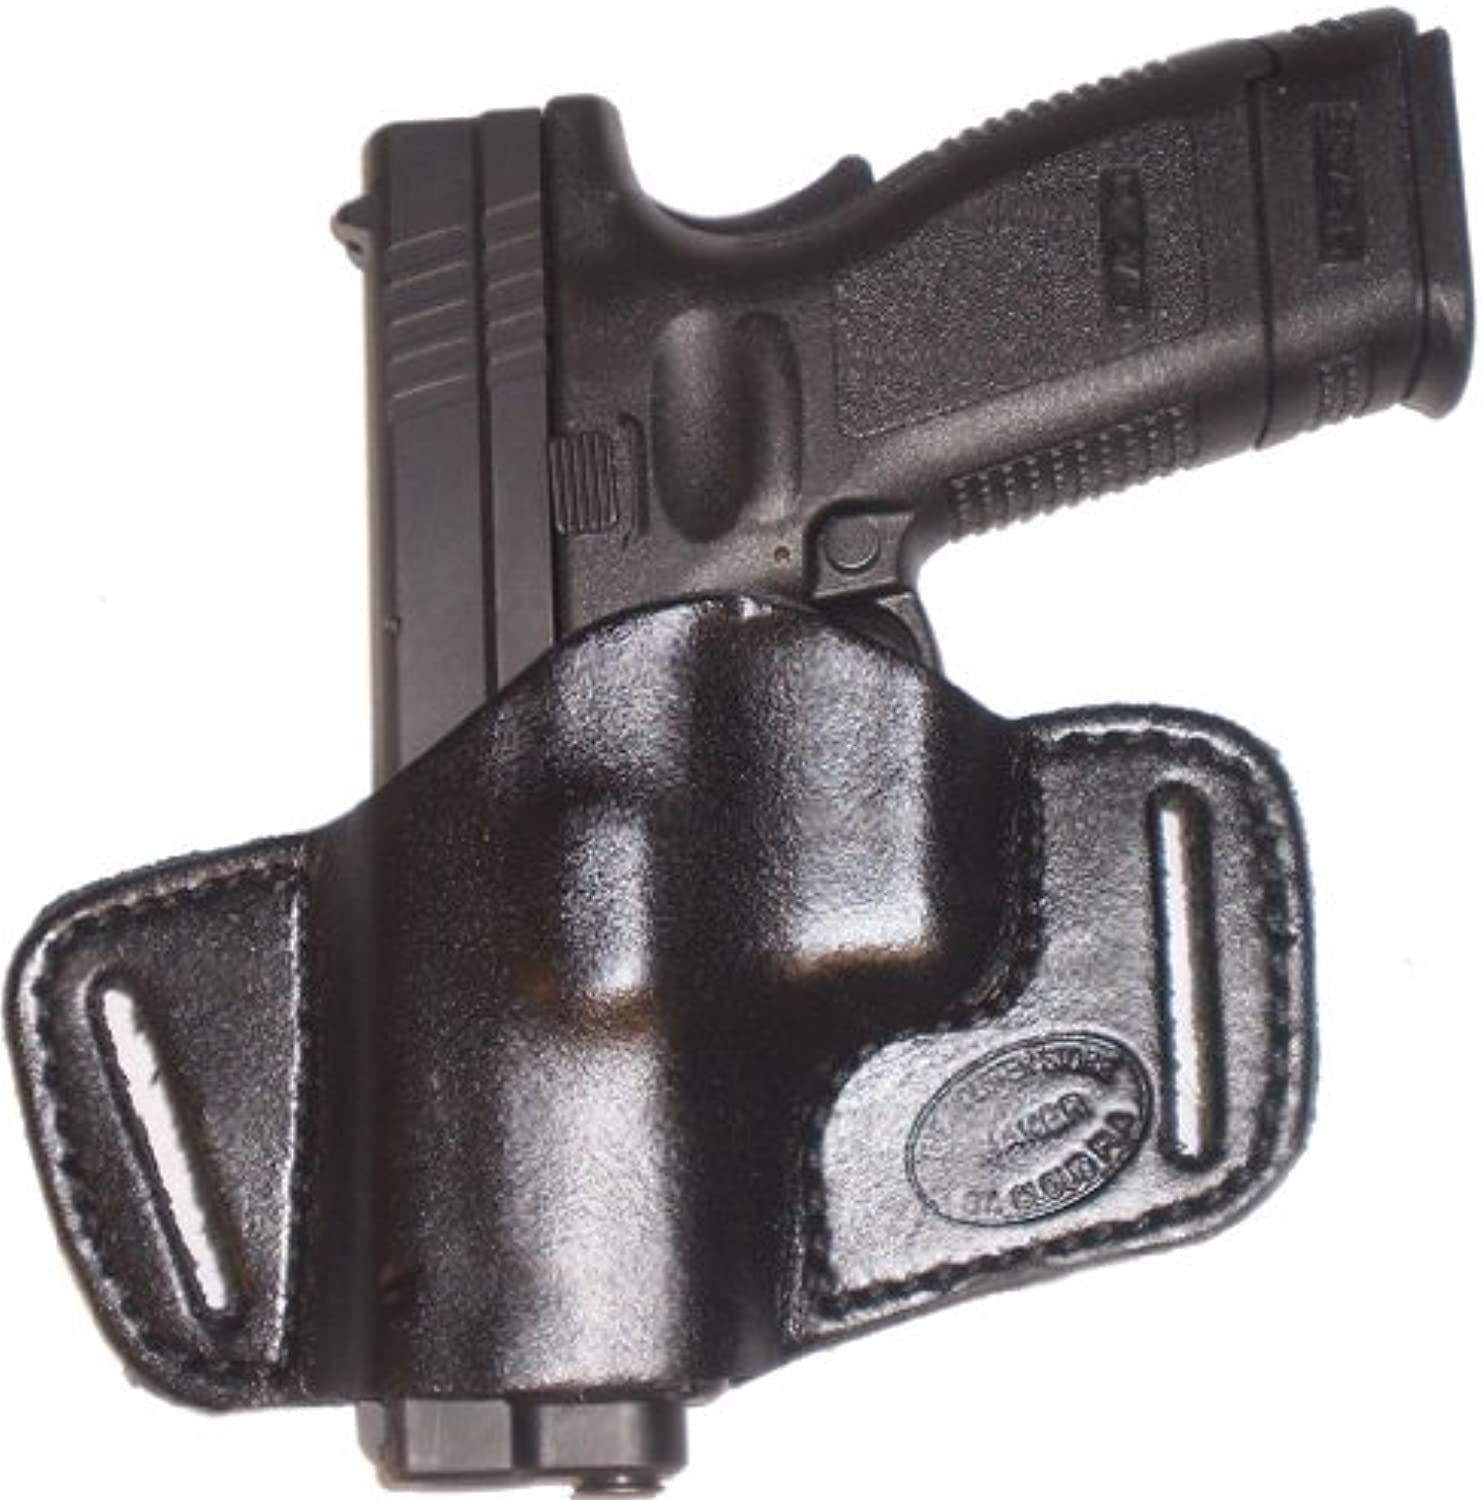 Beretta 92F Pro Carry Small Of The Back SOB Gun Holster